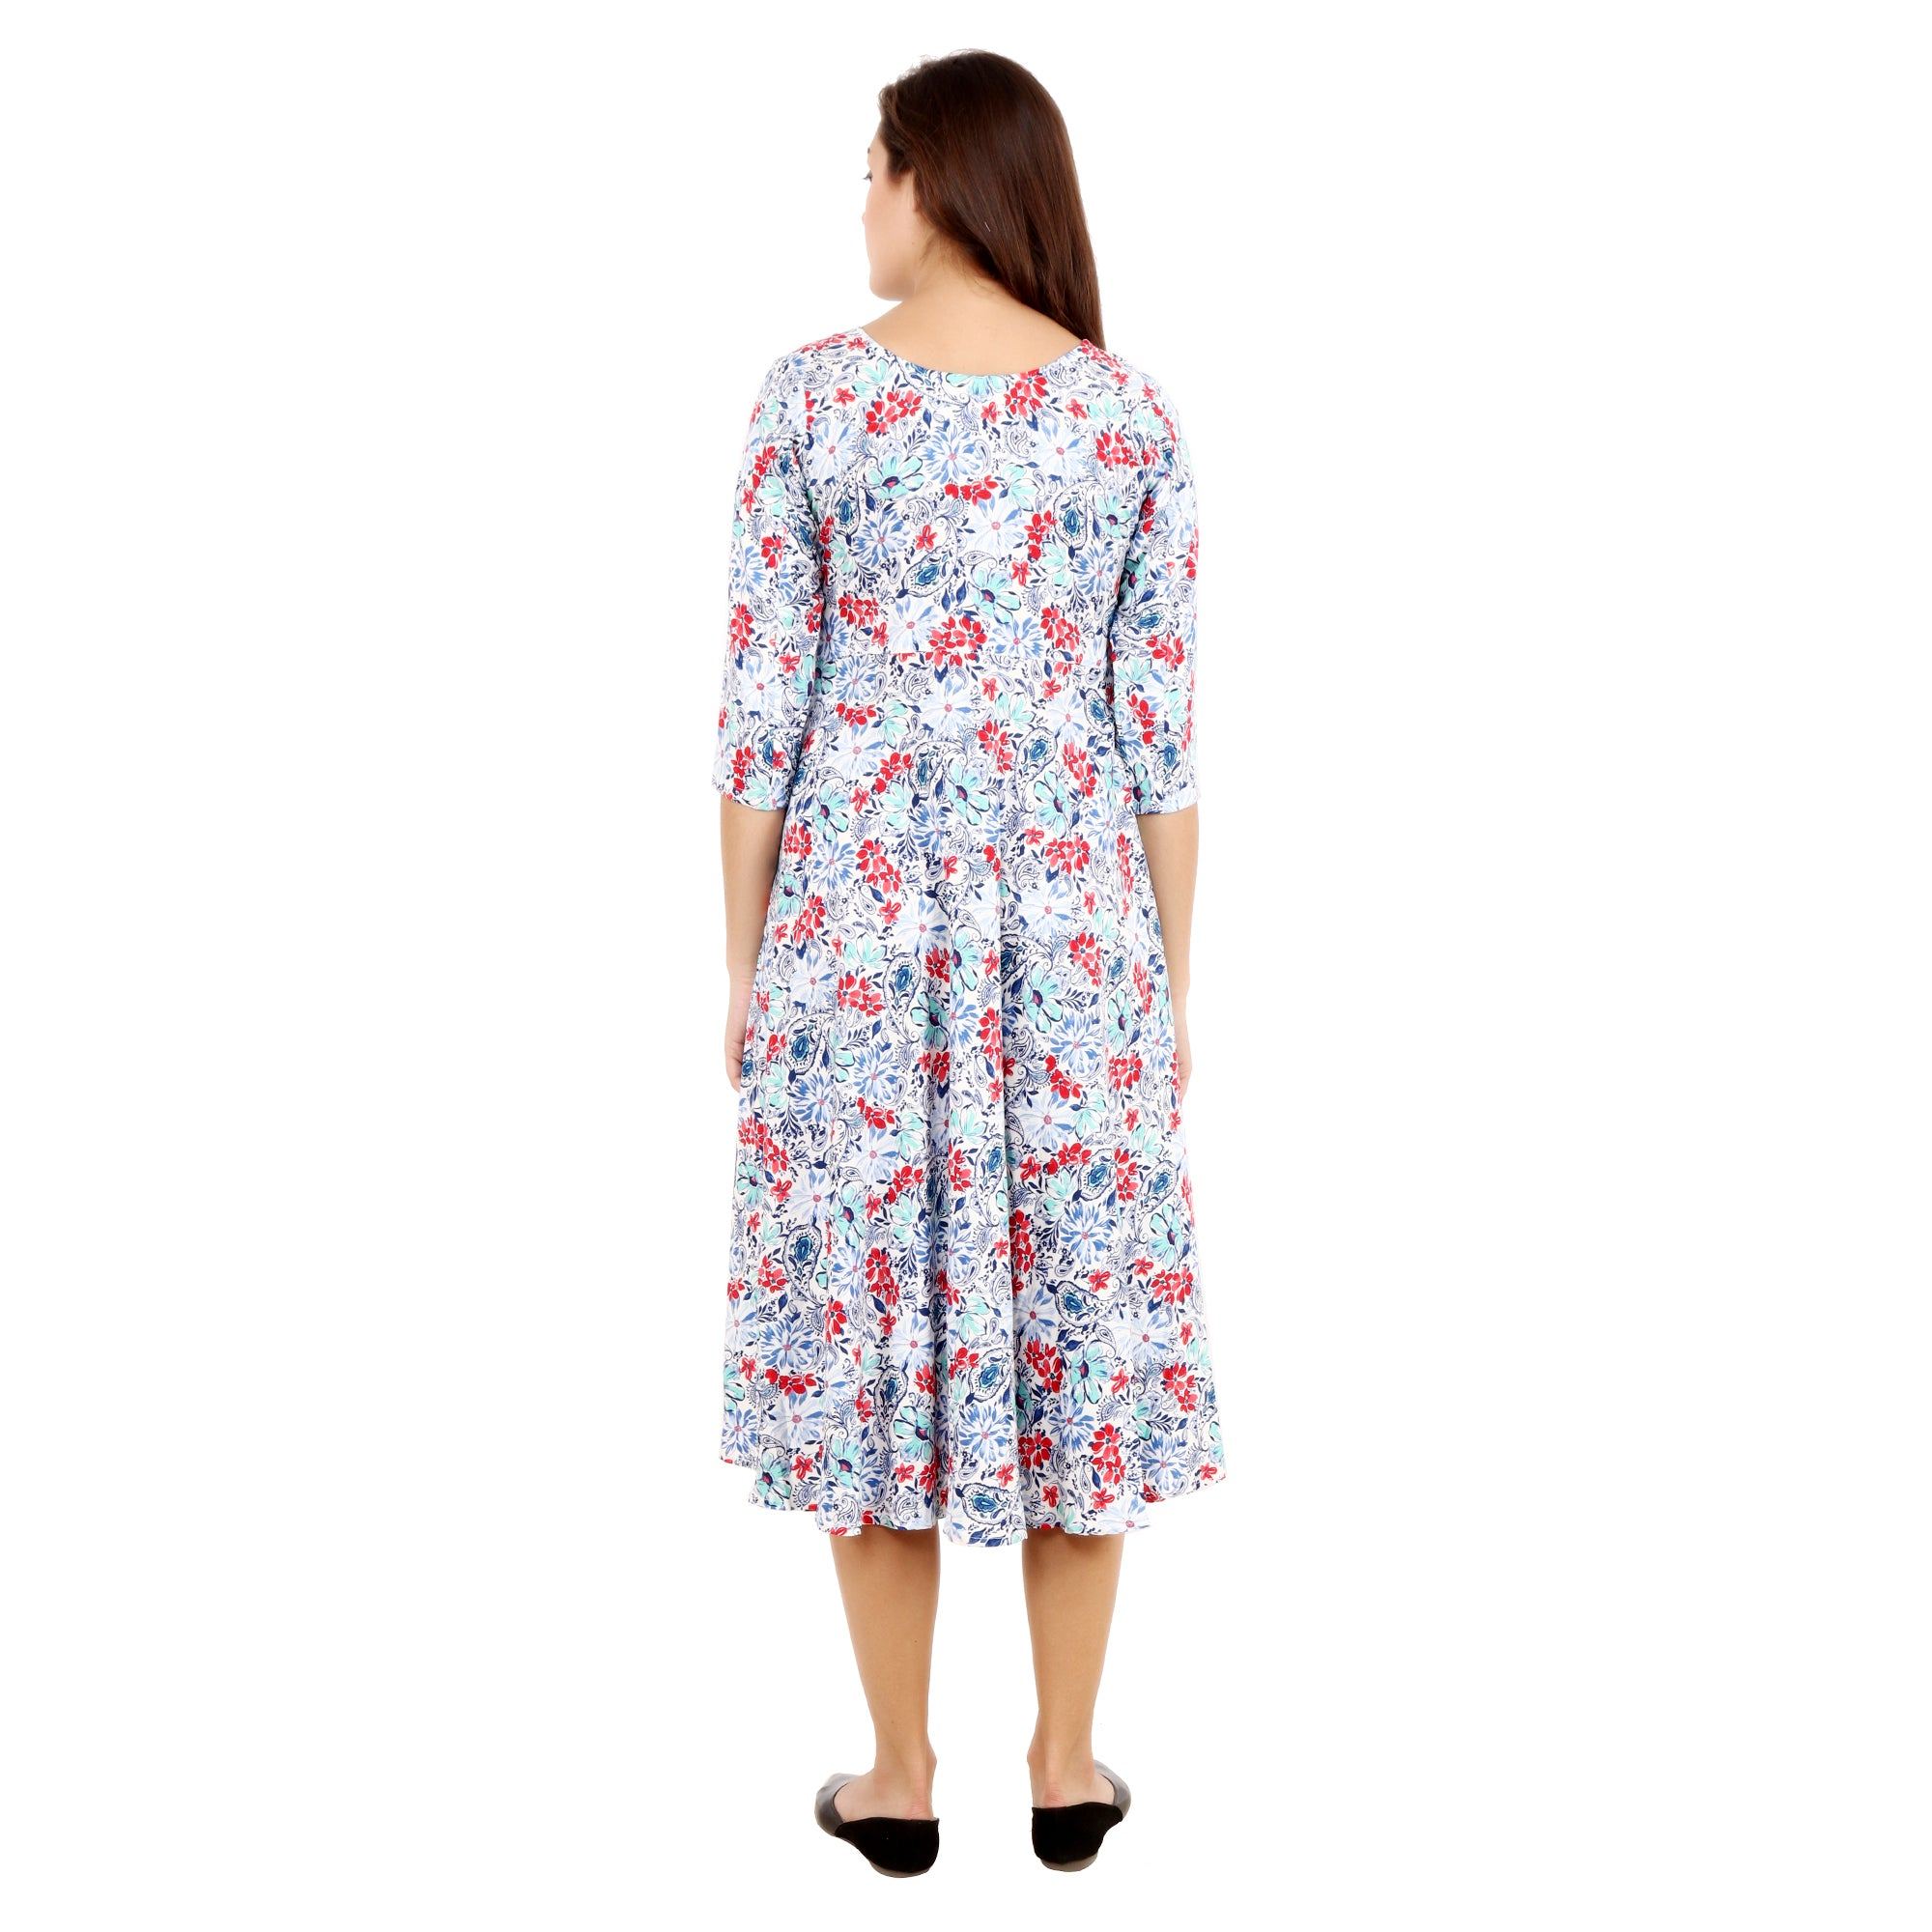 all size, best online store, blue, breathable, calf length, comfortable, dresses, flare, floral, green, knee length, maternity, multi, multicolor, plus size, print, printed, rayon, reasonable